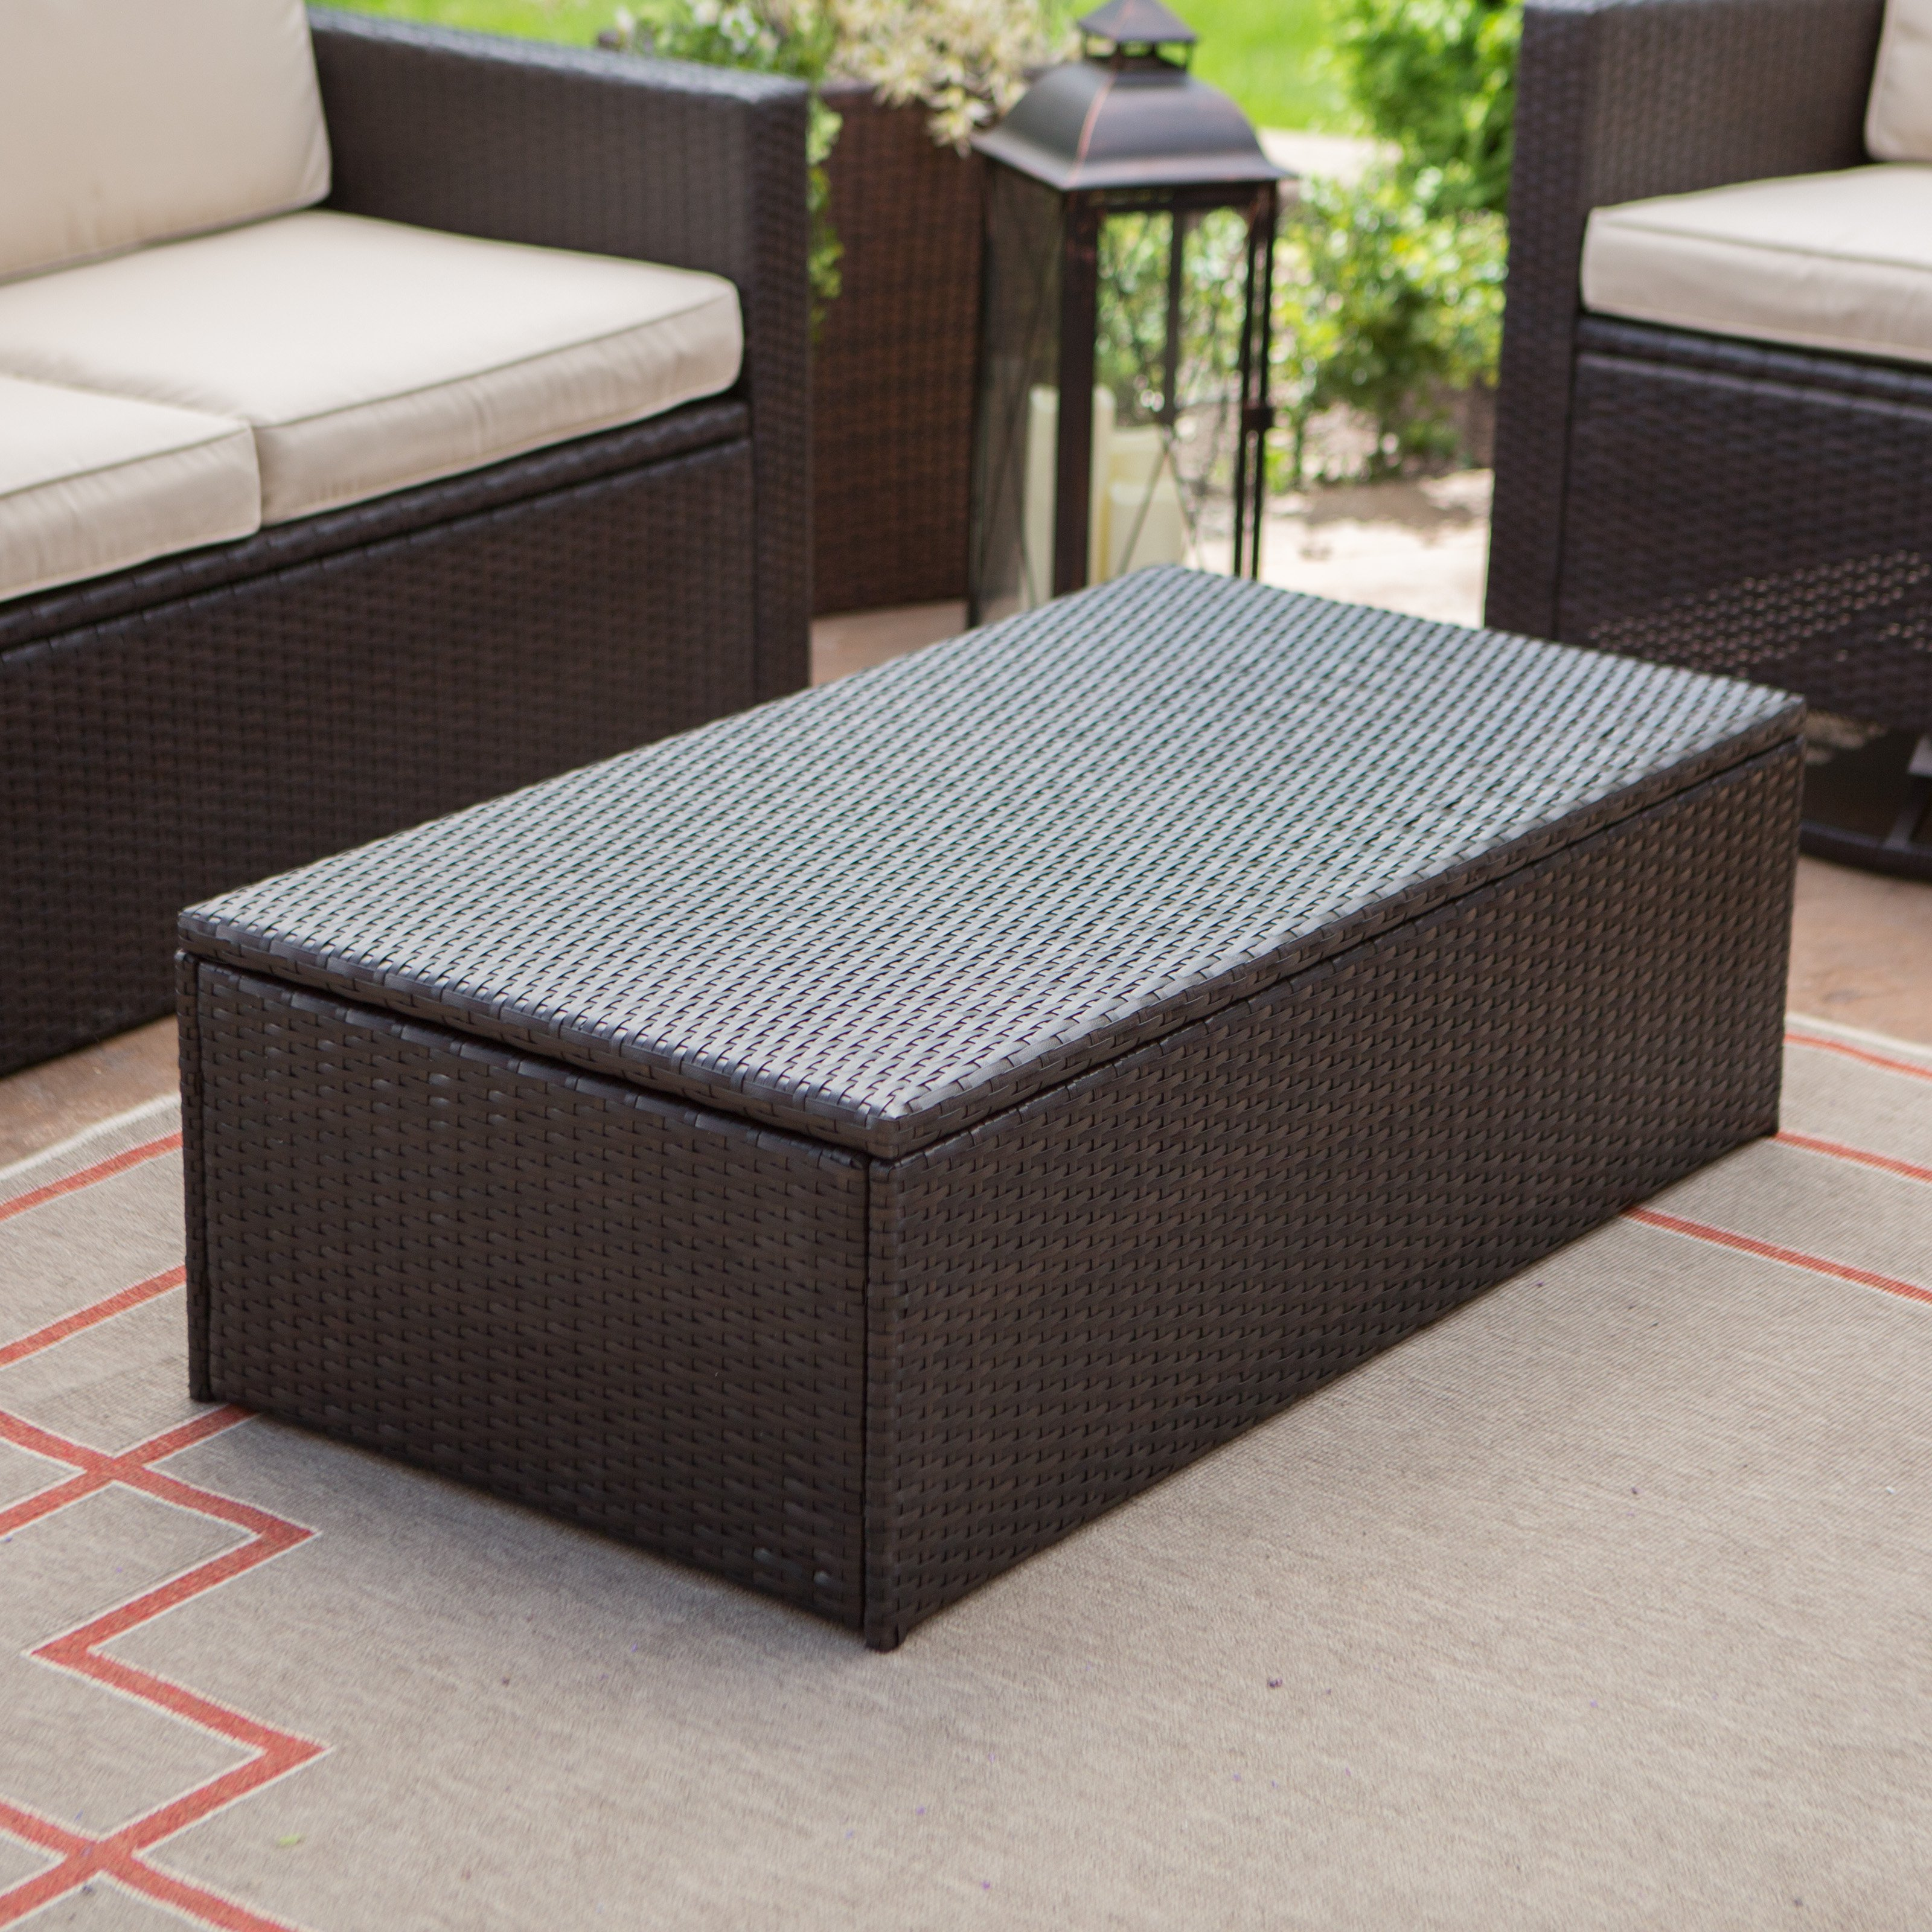 coffee tables patio accent for wicker outdoor antique metal side table tall bistro and stools sofas black frame pier one imports locations kitchen cupboards changing dresser